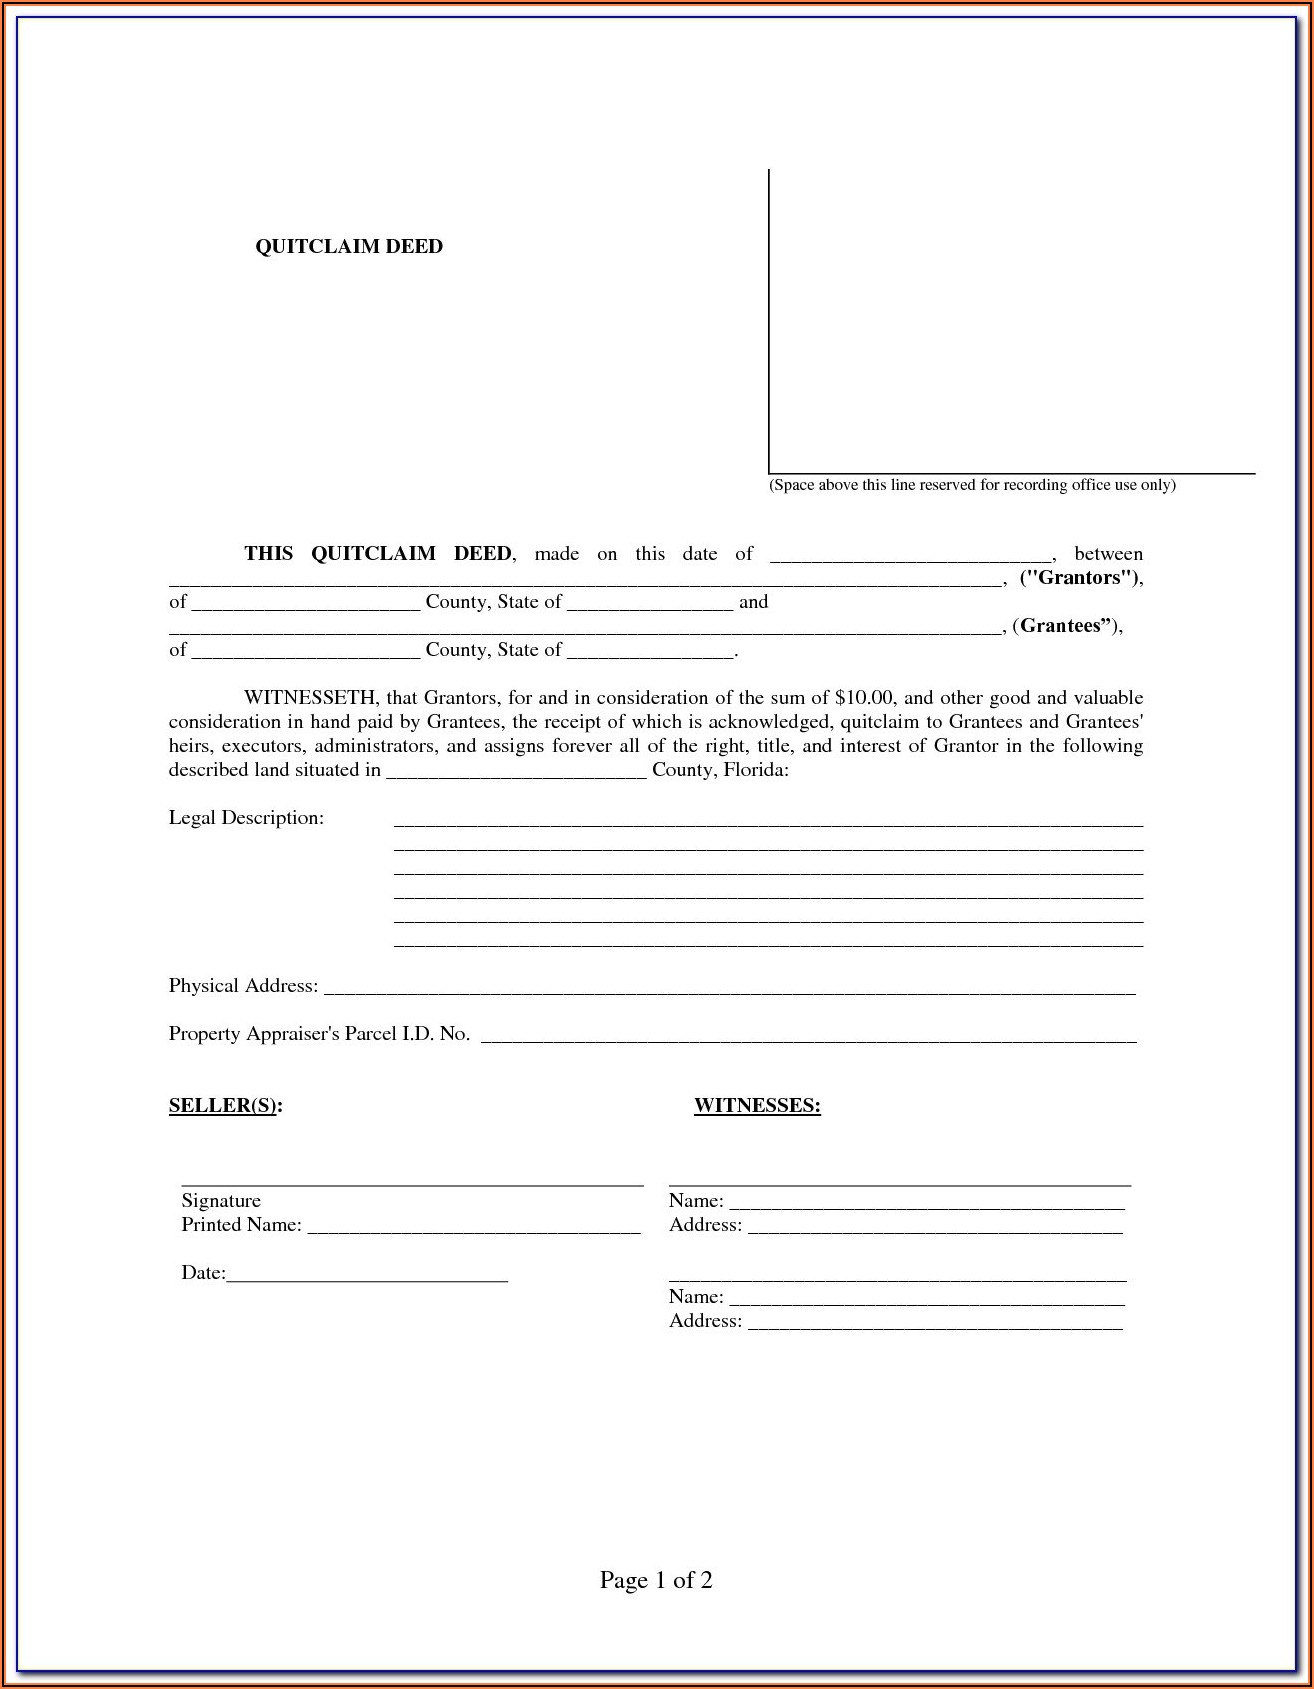 Florida Warranty Deed Form Pdf